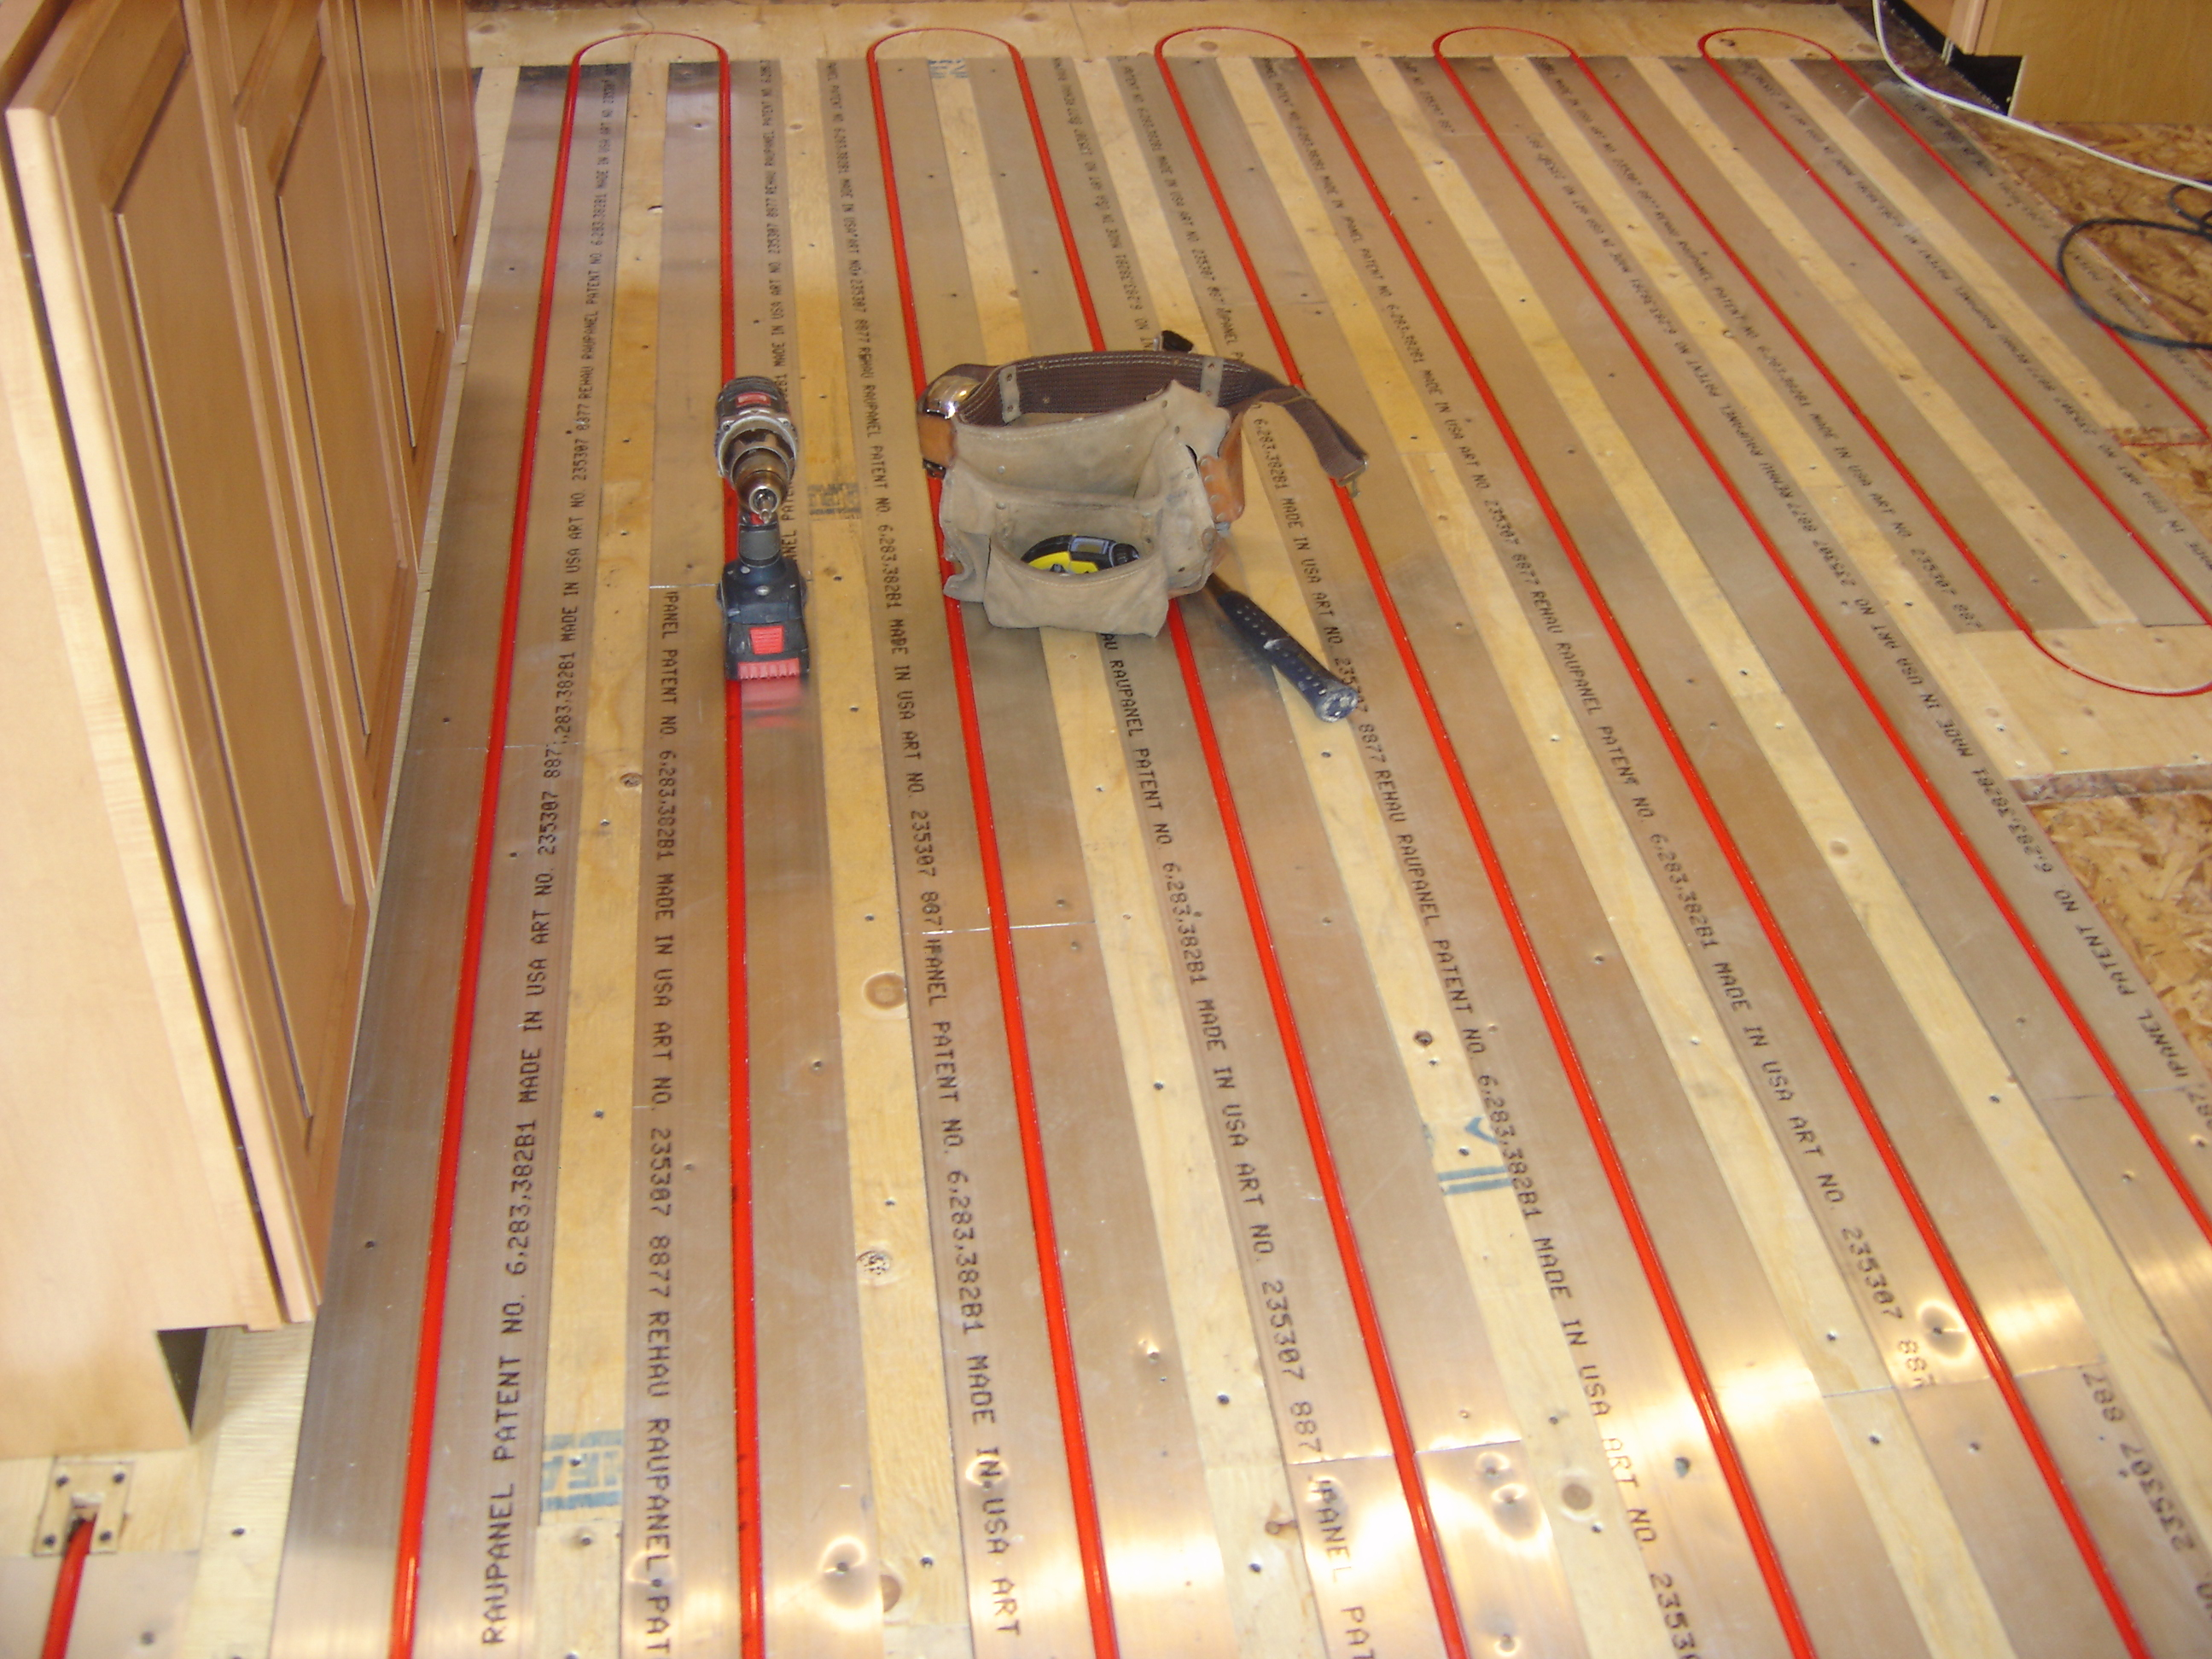 How to install radiant floor heating on subfloor gurus floor for Radiant heat flooring options